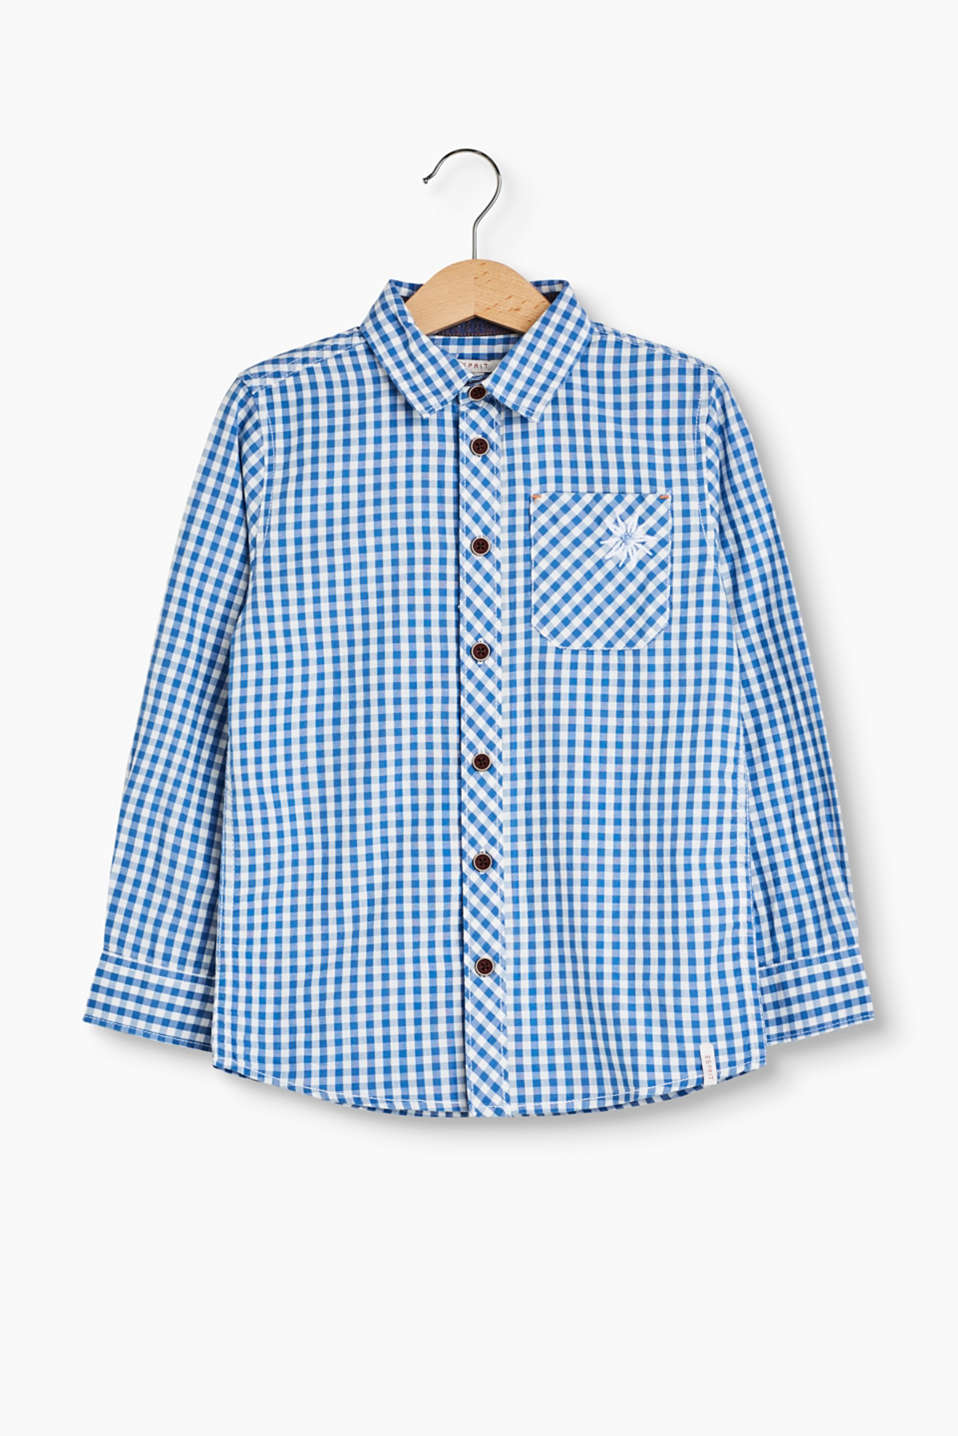 Off to Oktoberfest! In this soft cotton shirt in typical Bavarian Oktoberfest style